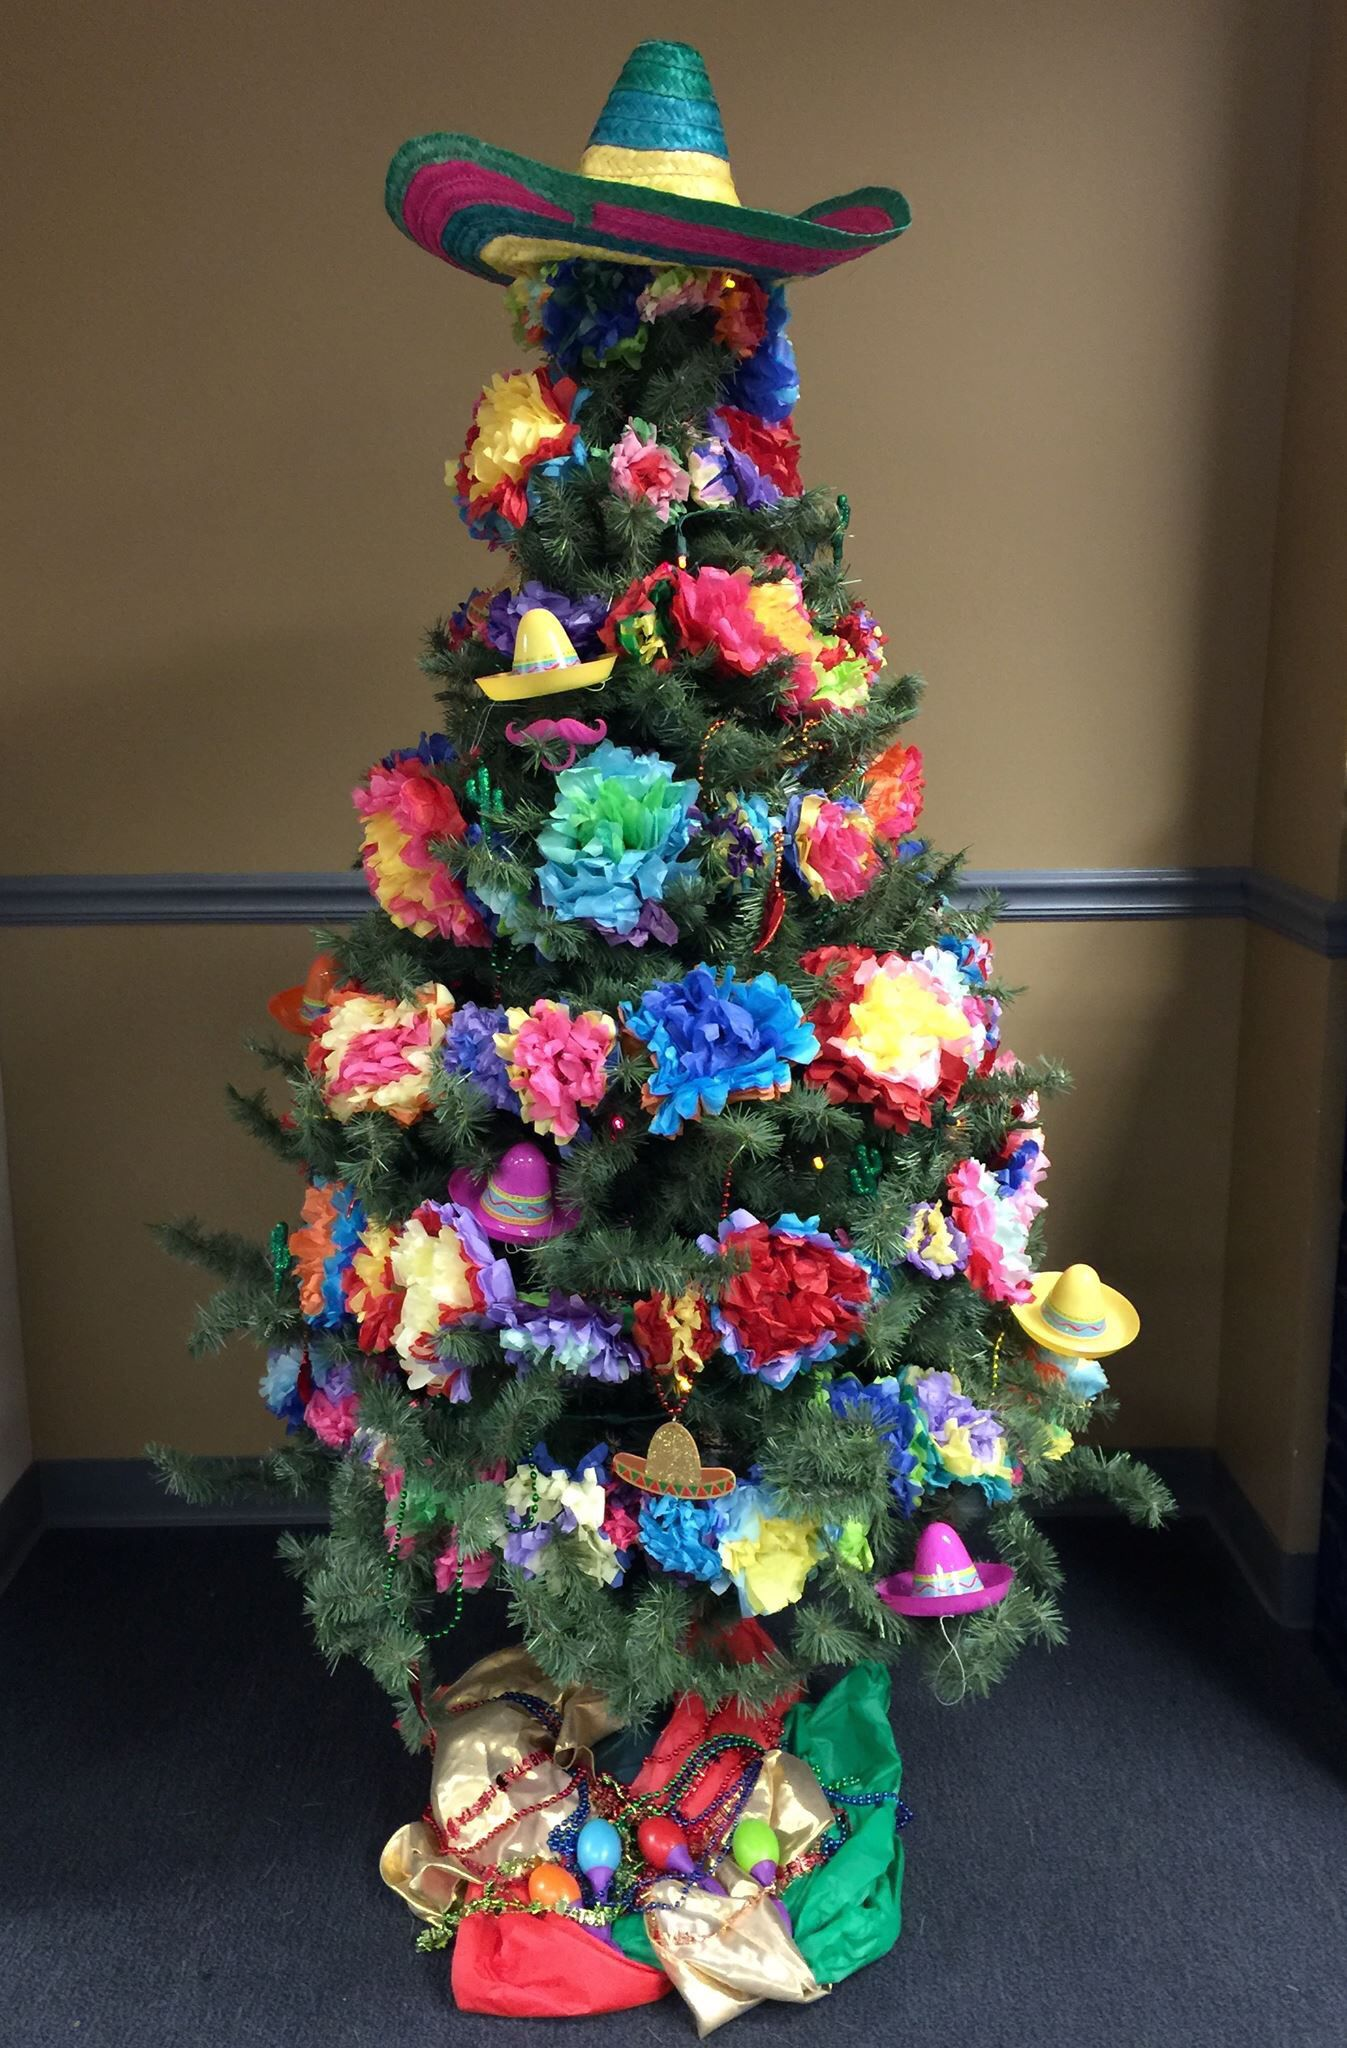 Christmas Tree Decorations Mexico Www Indiepedia Org